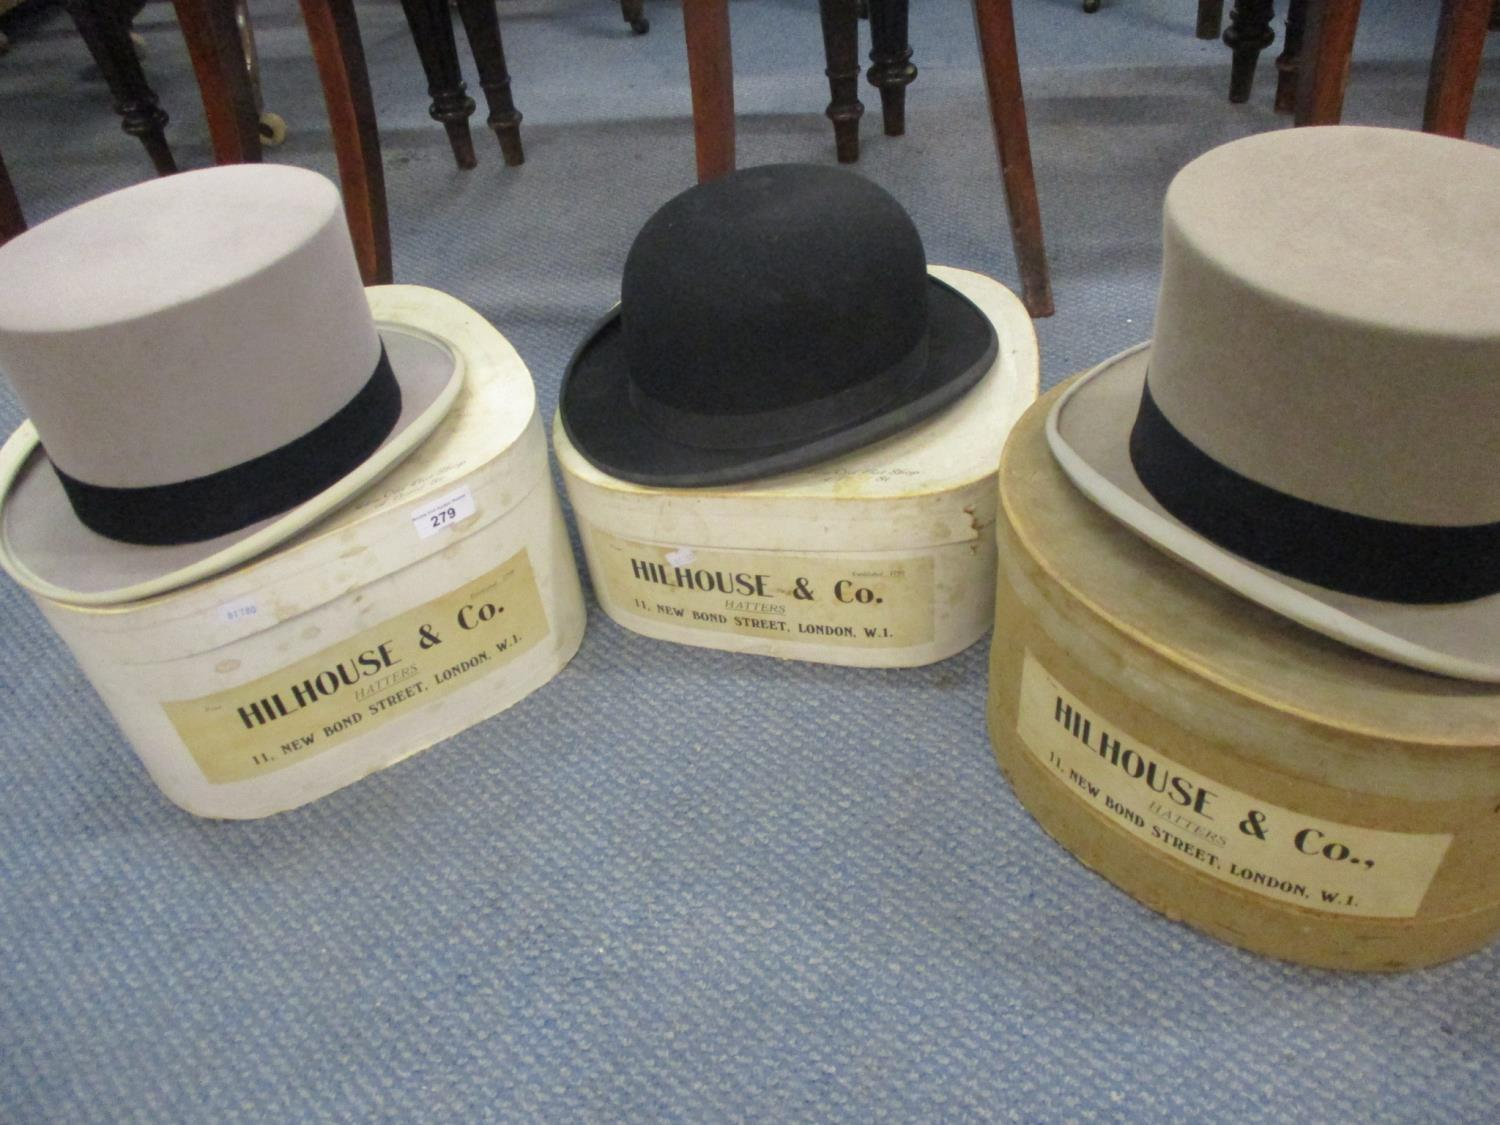 Hillhouse & Co, three gents hats comprising a bowler hat and two grey top hats together with three